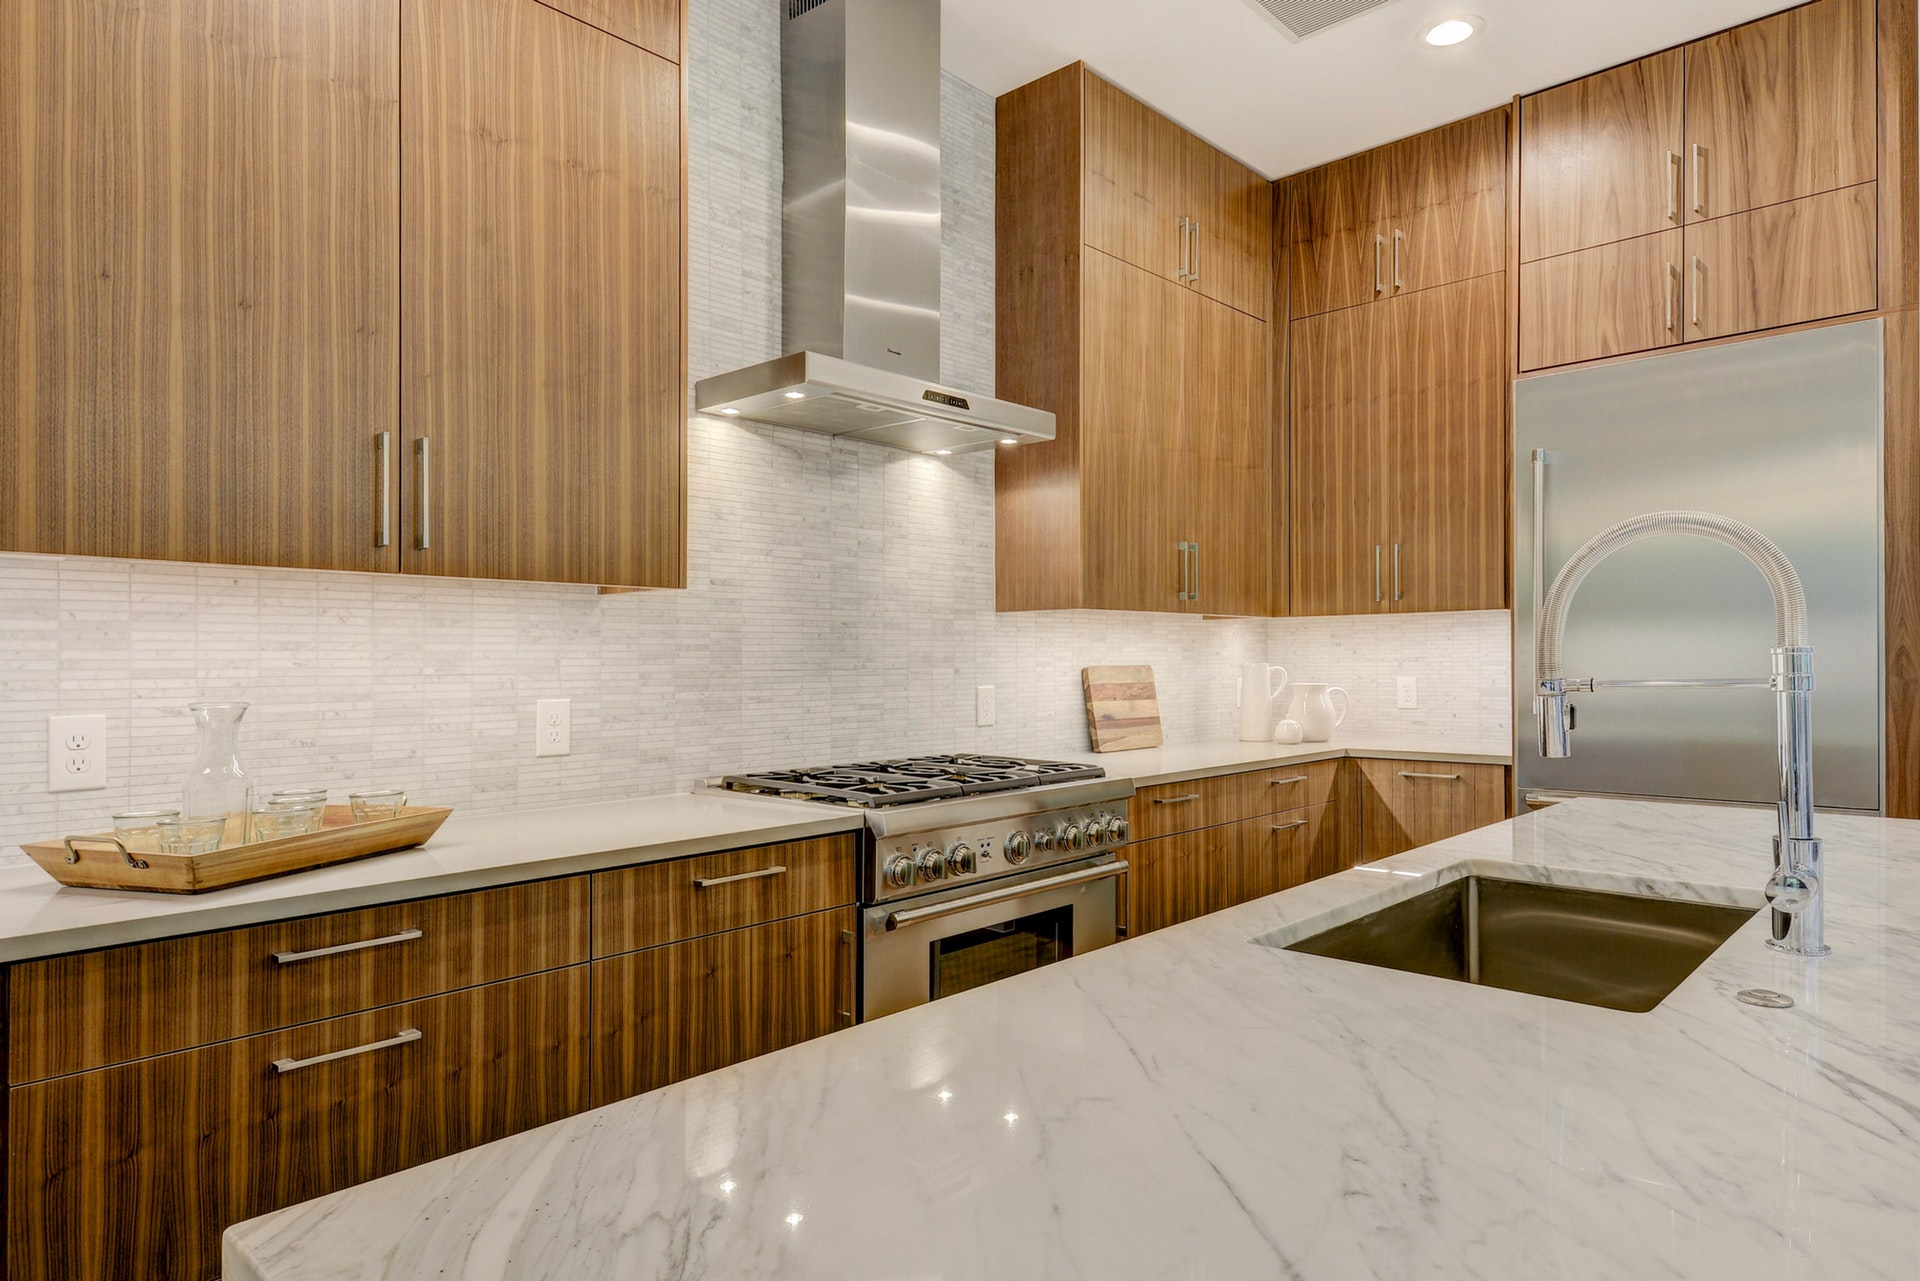 The vertical grain walnut cabinets, Thremador appliances, and calcutta marble countertops add luxury to this kitchen.